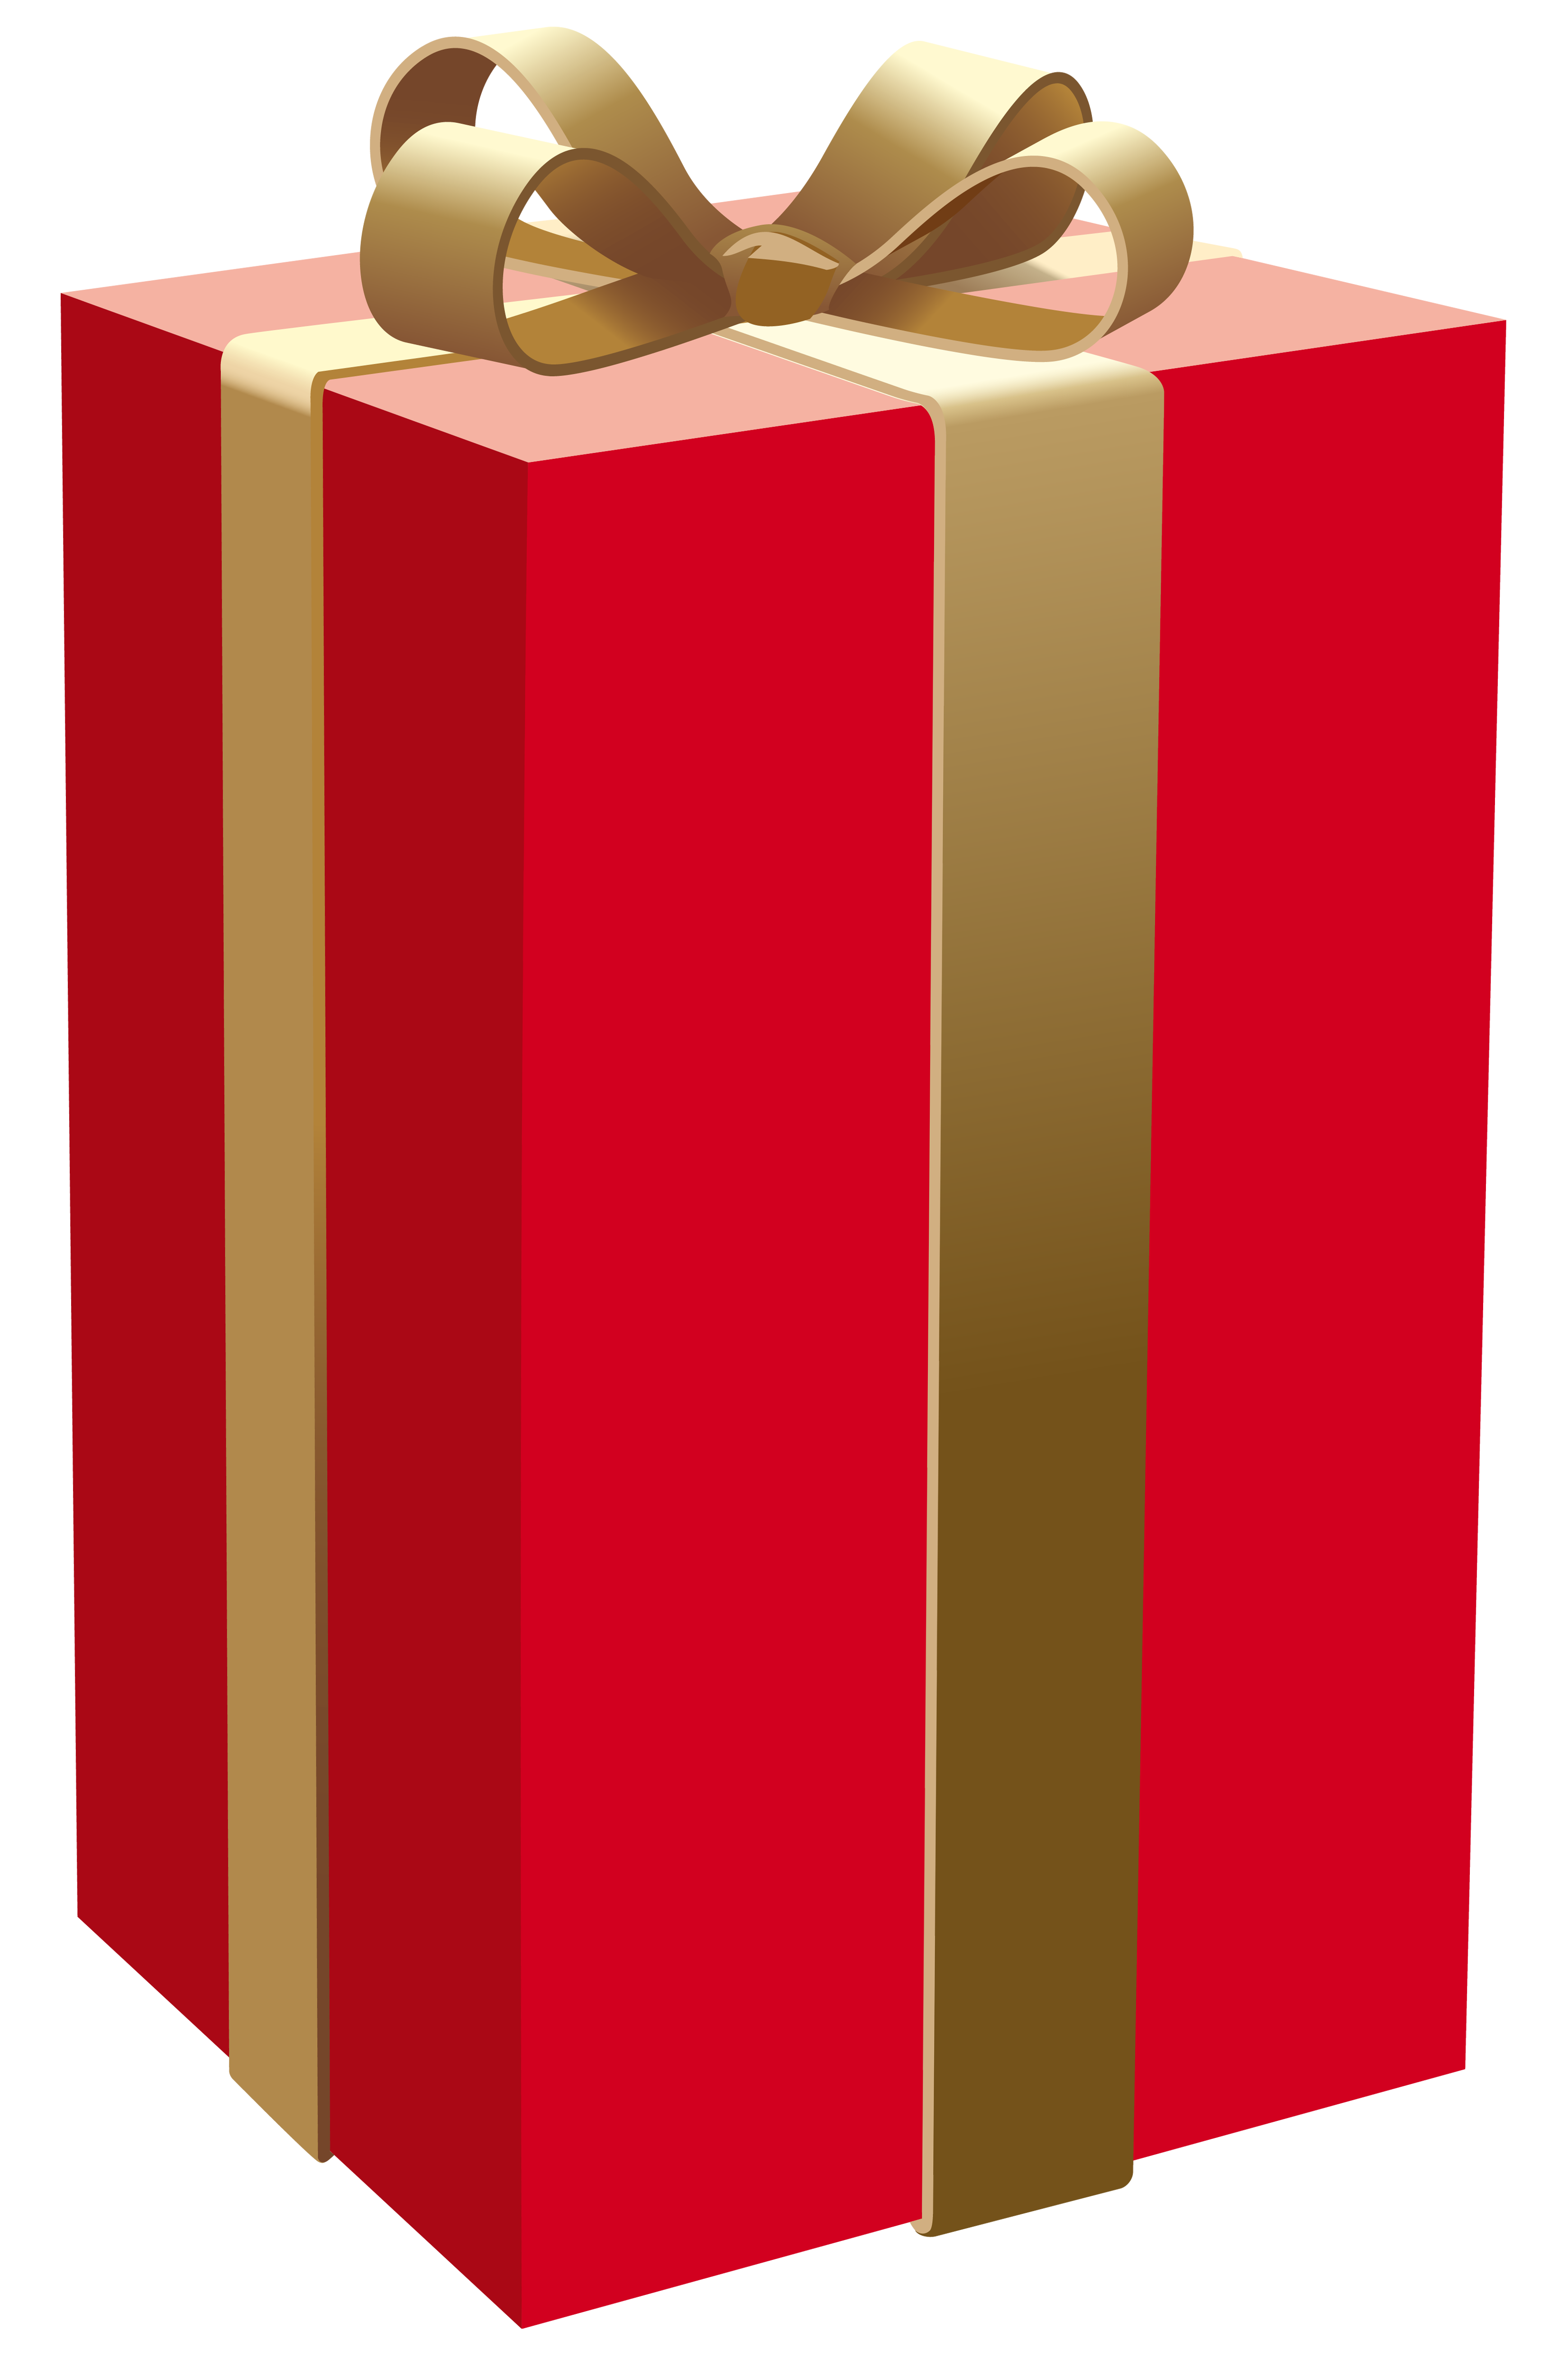 Box clipart quality. Red gift png best